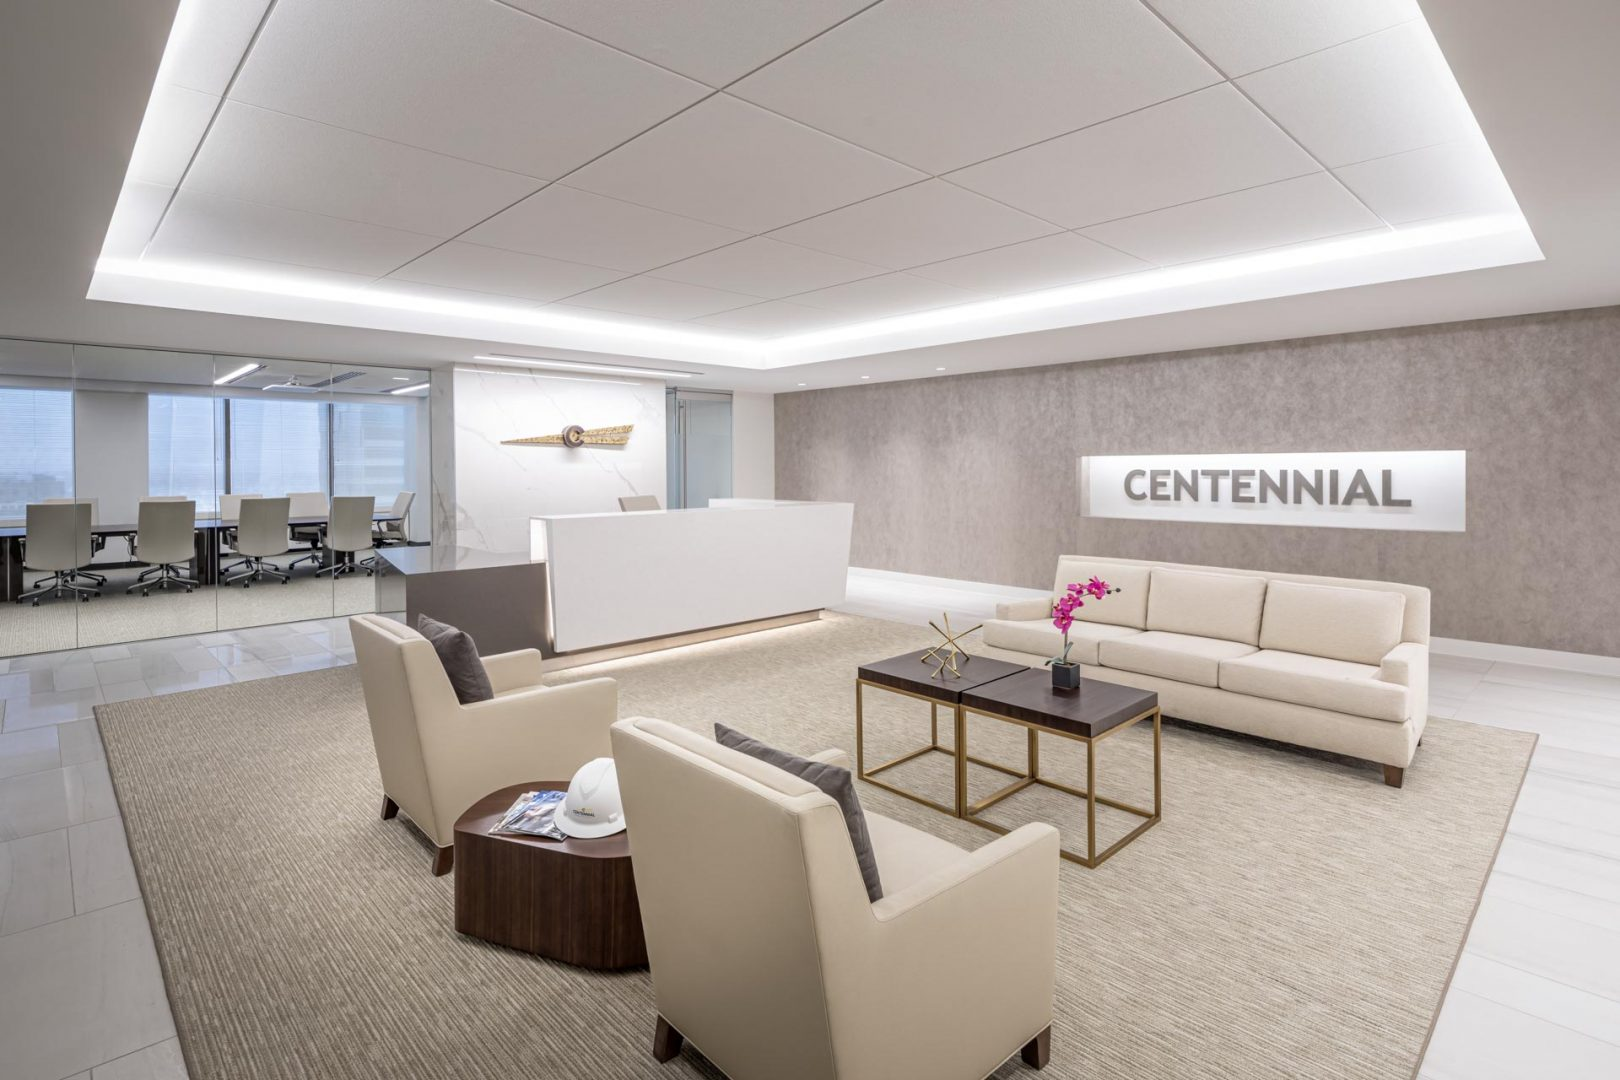 Corporate Interior Design Entry Lobby Seating Centennial Denver